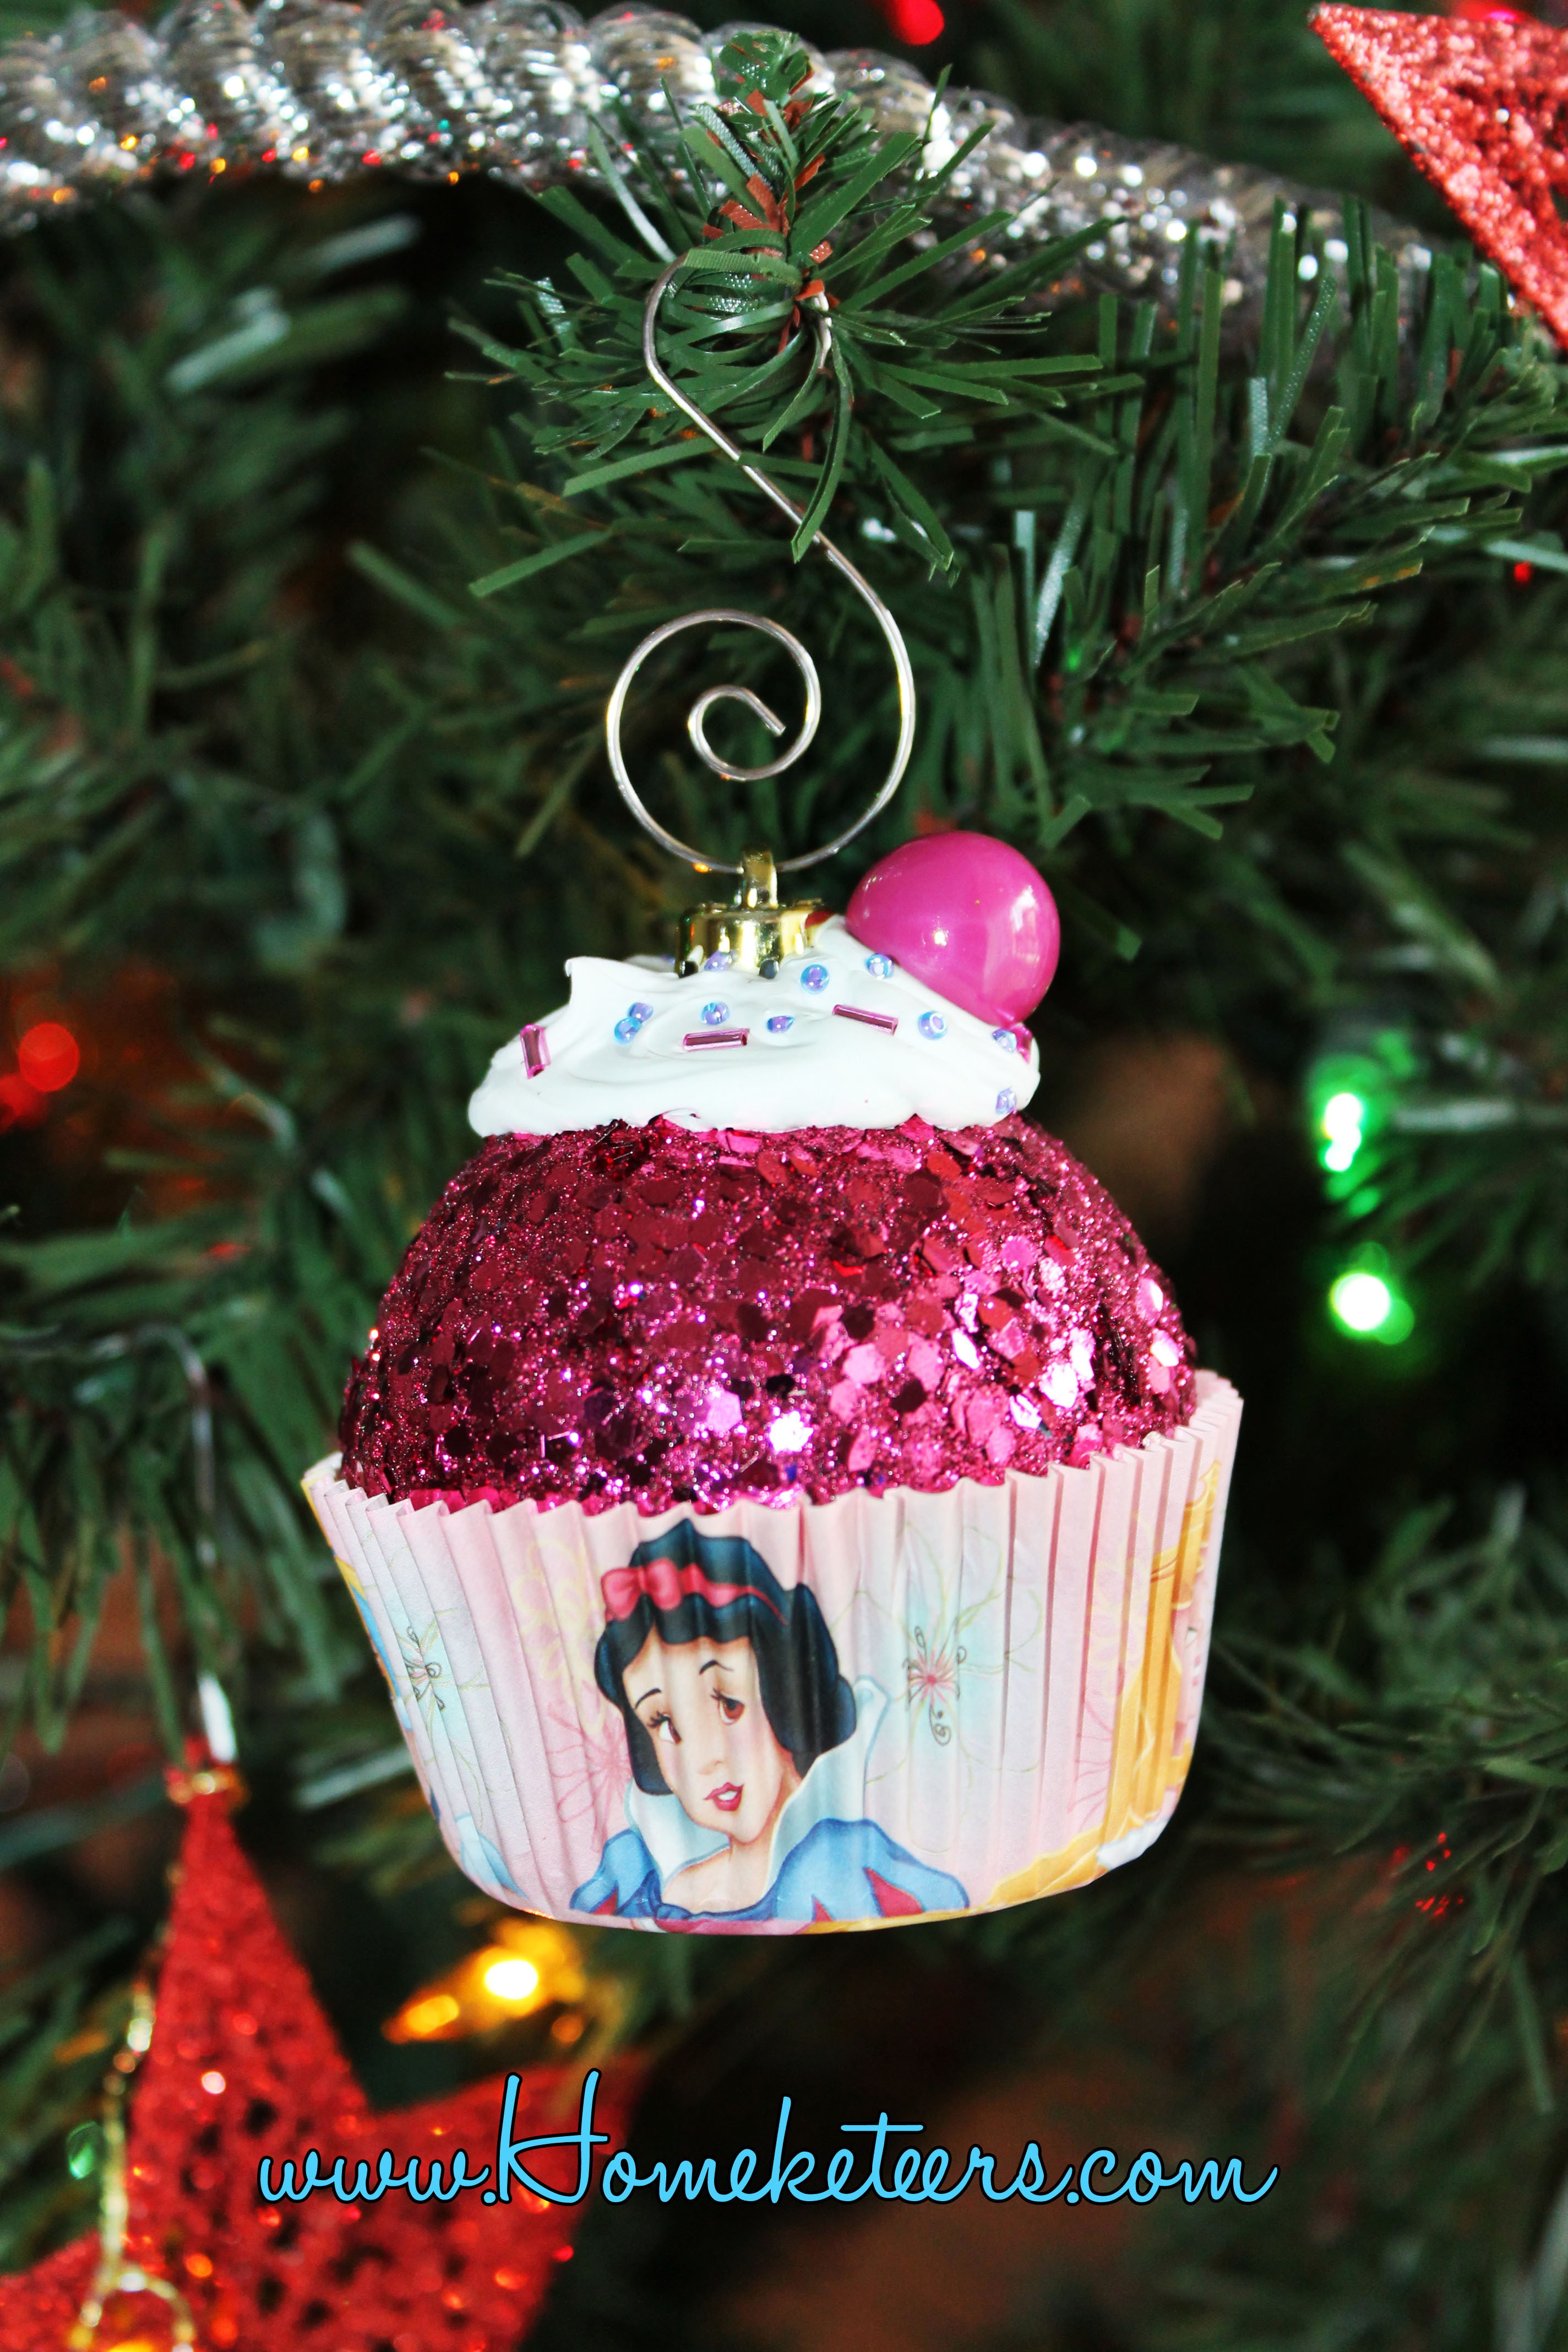 Christmas ornaments to Make Elegant How to Make Cupcake ornaments Of Delightful 43 Images Christmas ornaments to Make